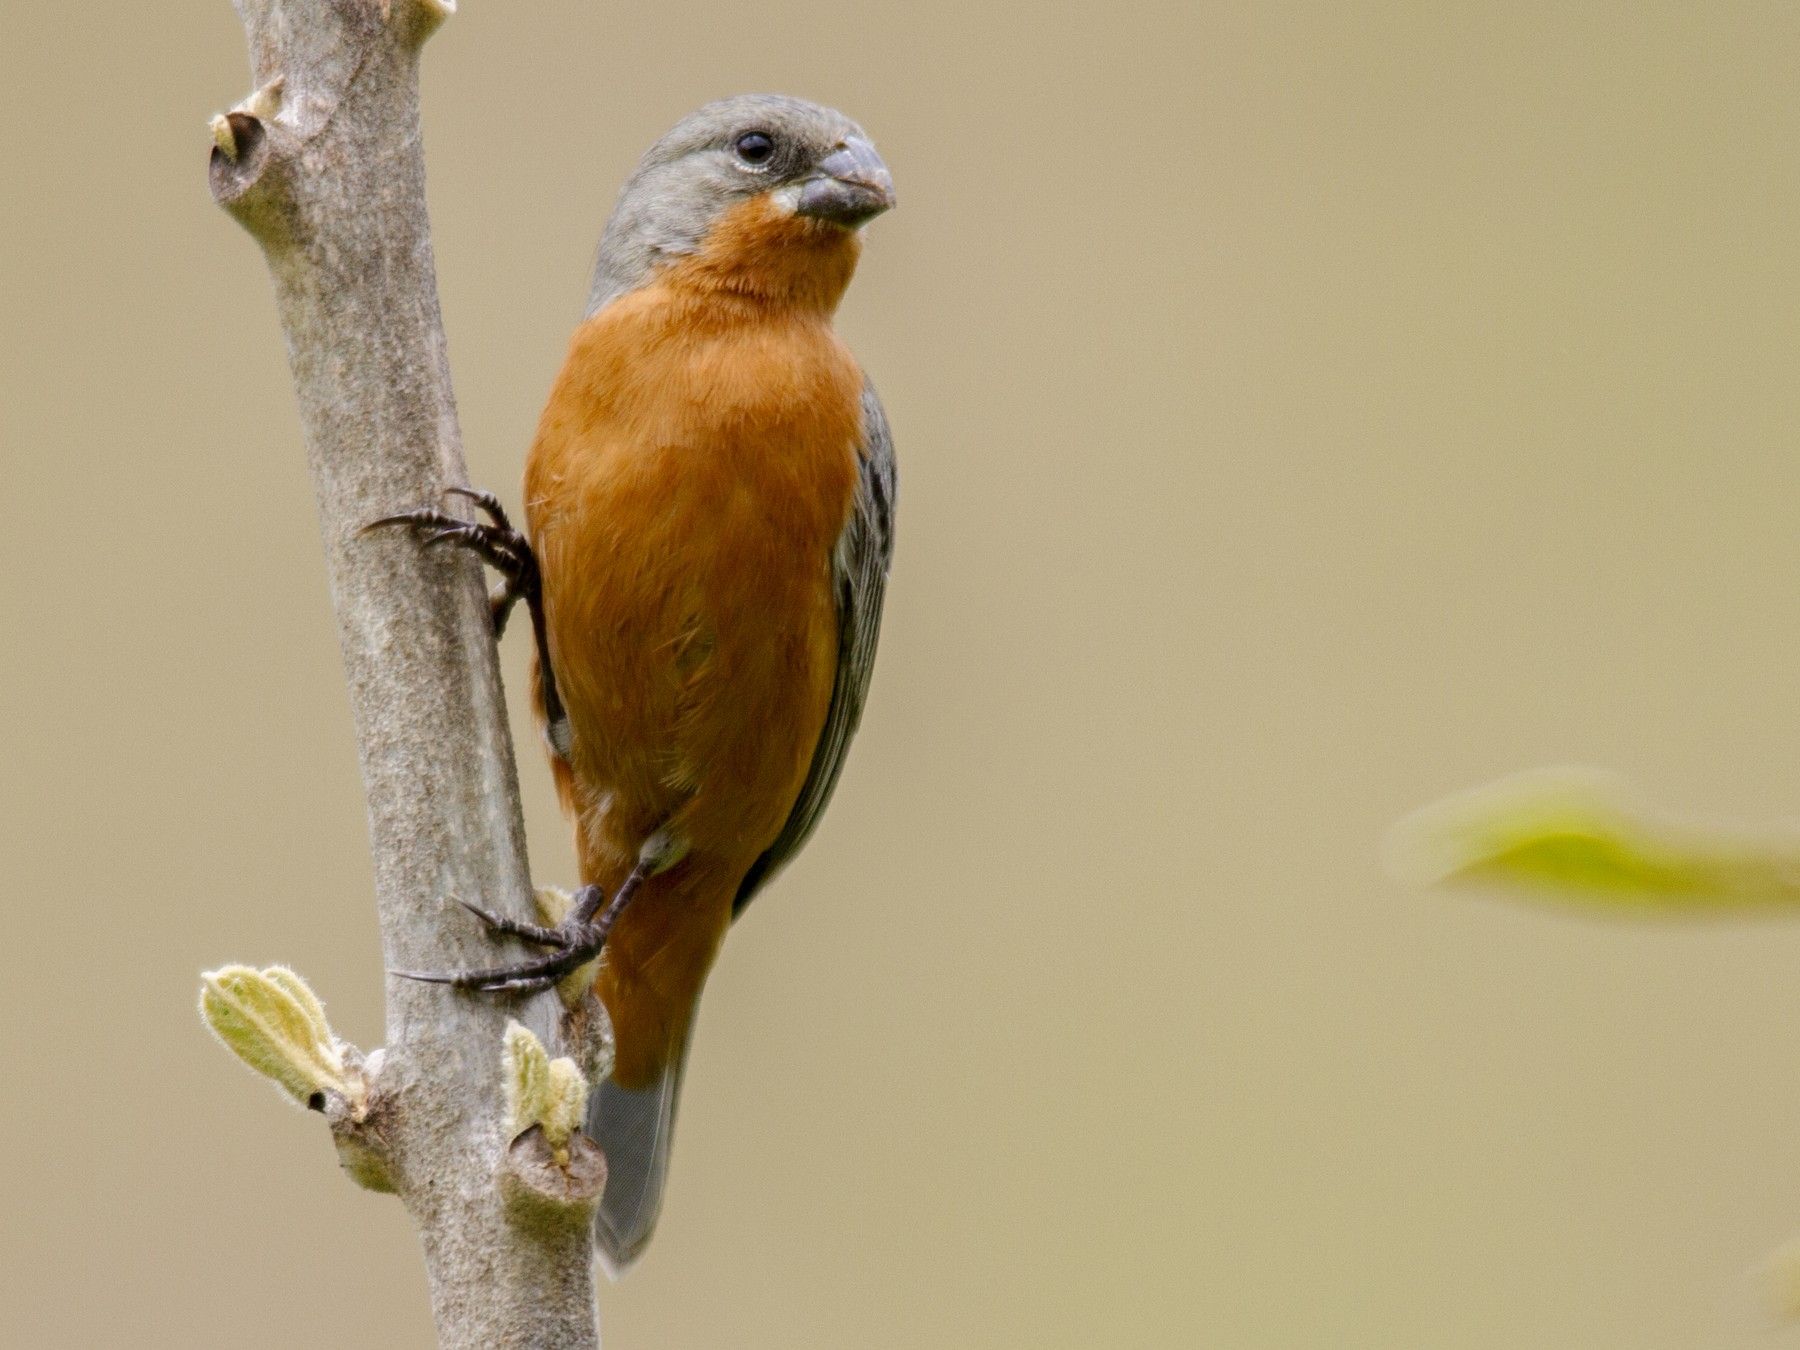 Ruddy-breasted Seedeater - Andres Vasquez